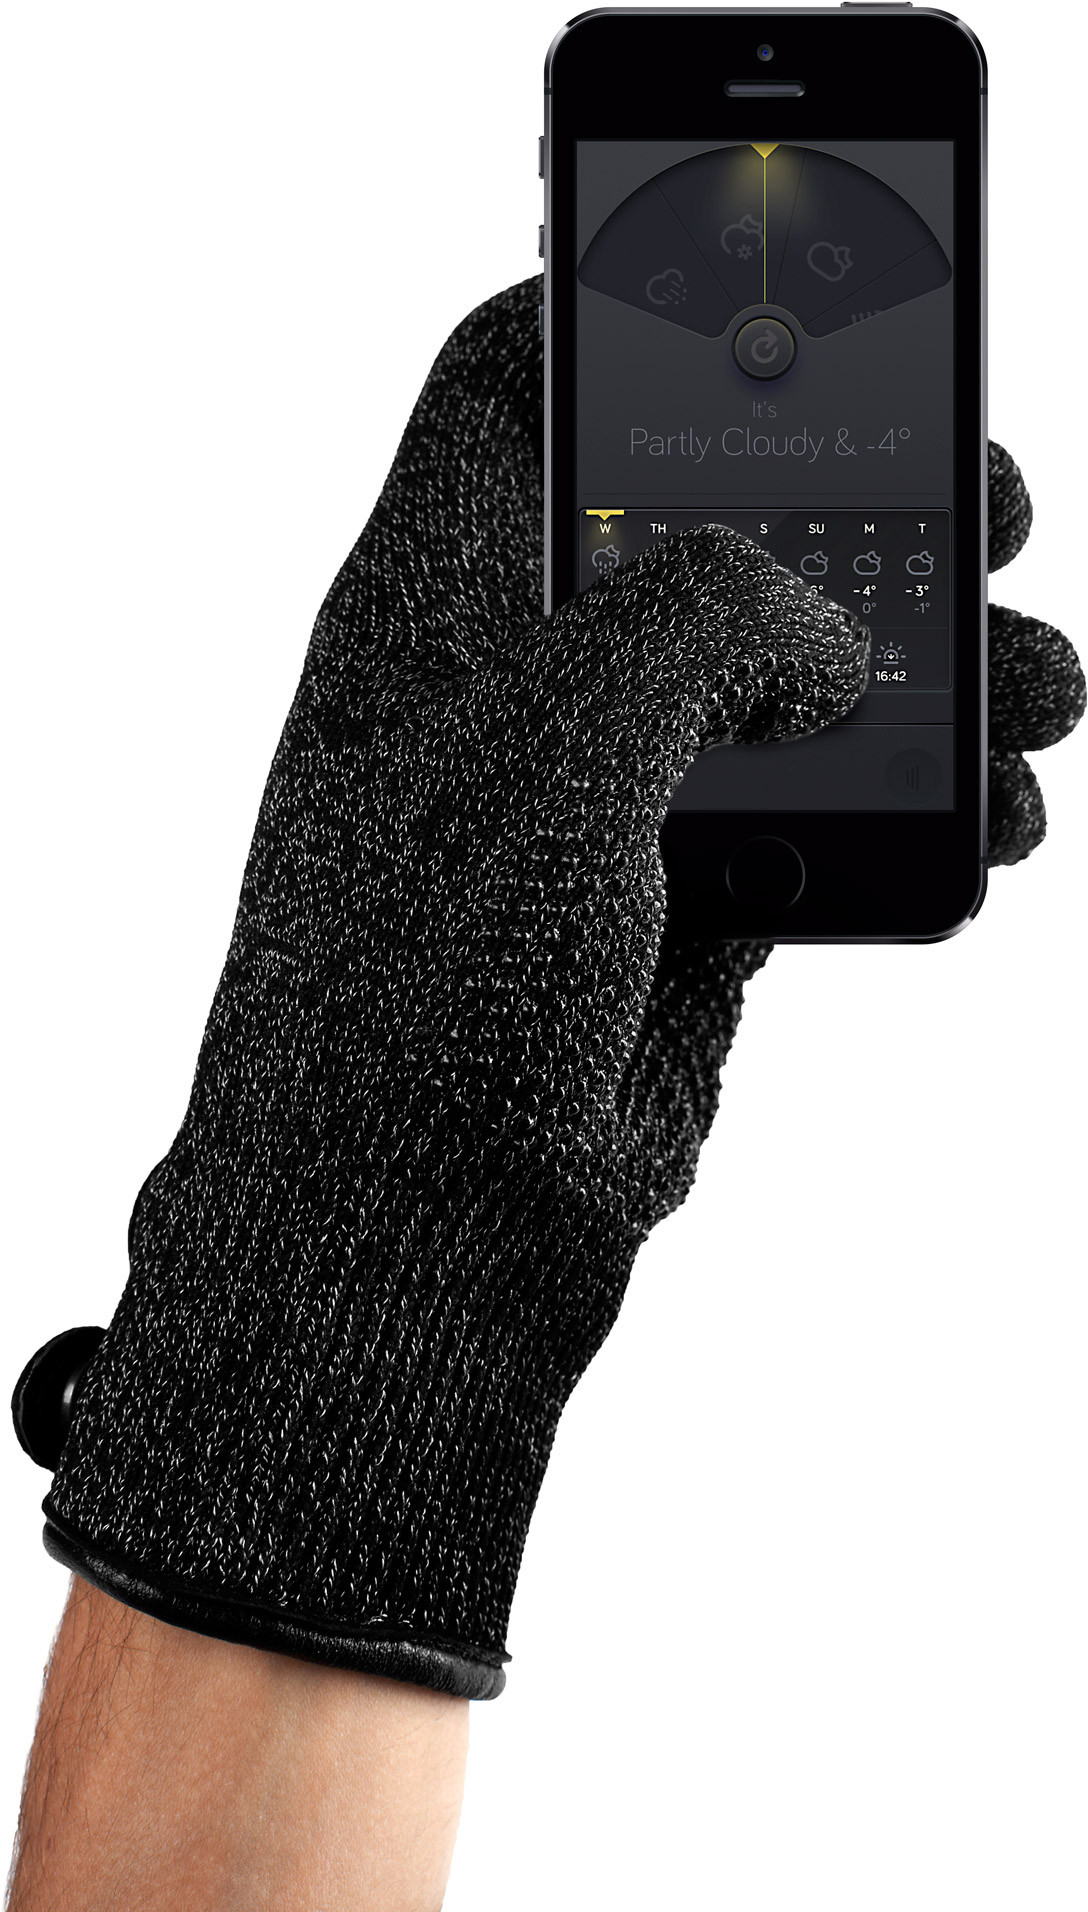 Best Touchscreen Gloves 2020 Best Touchscreen Gloves for Winter 2018   AIVAnet